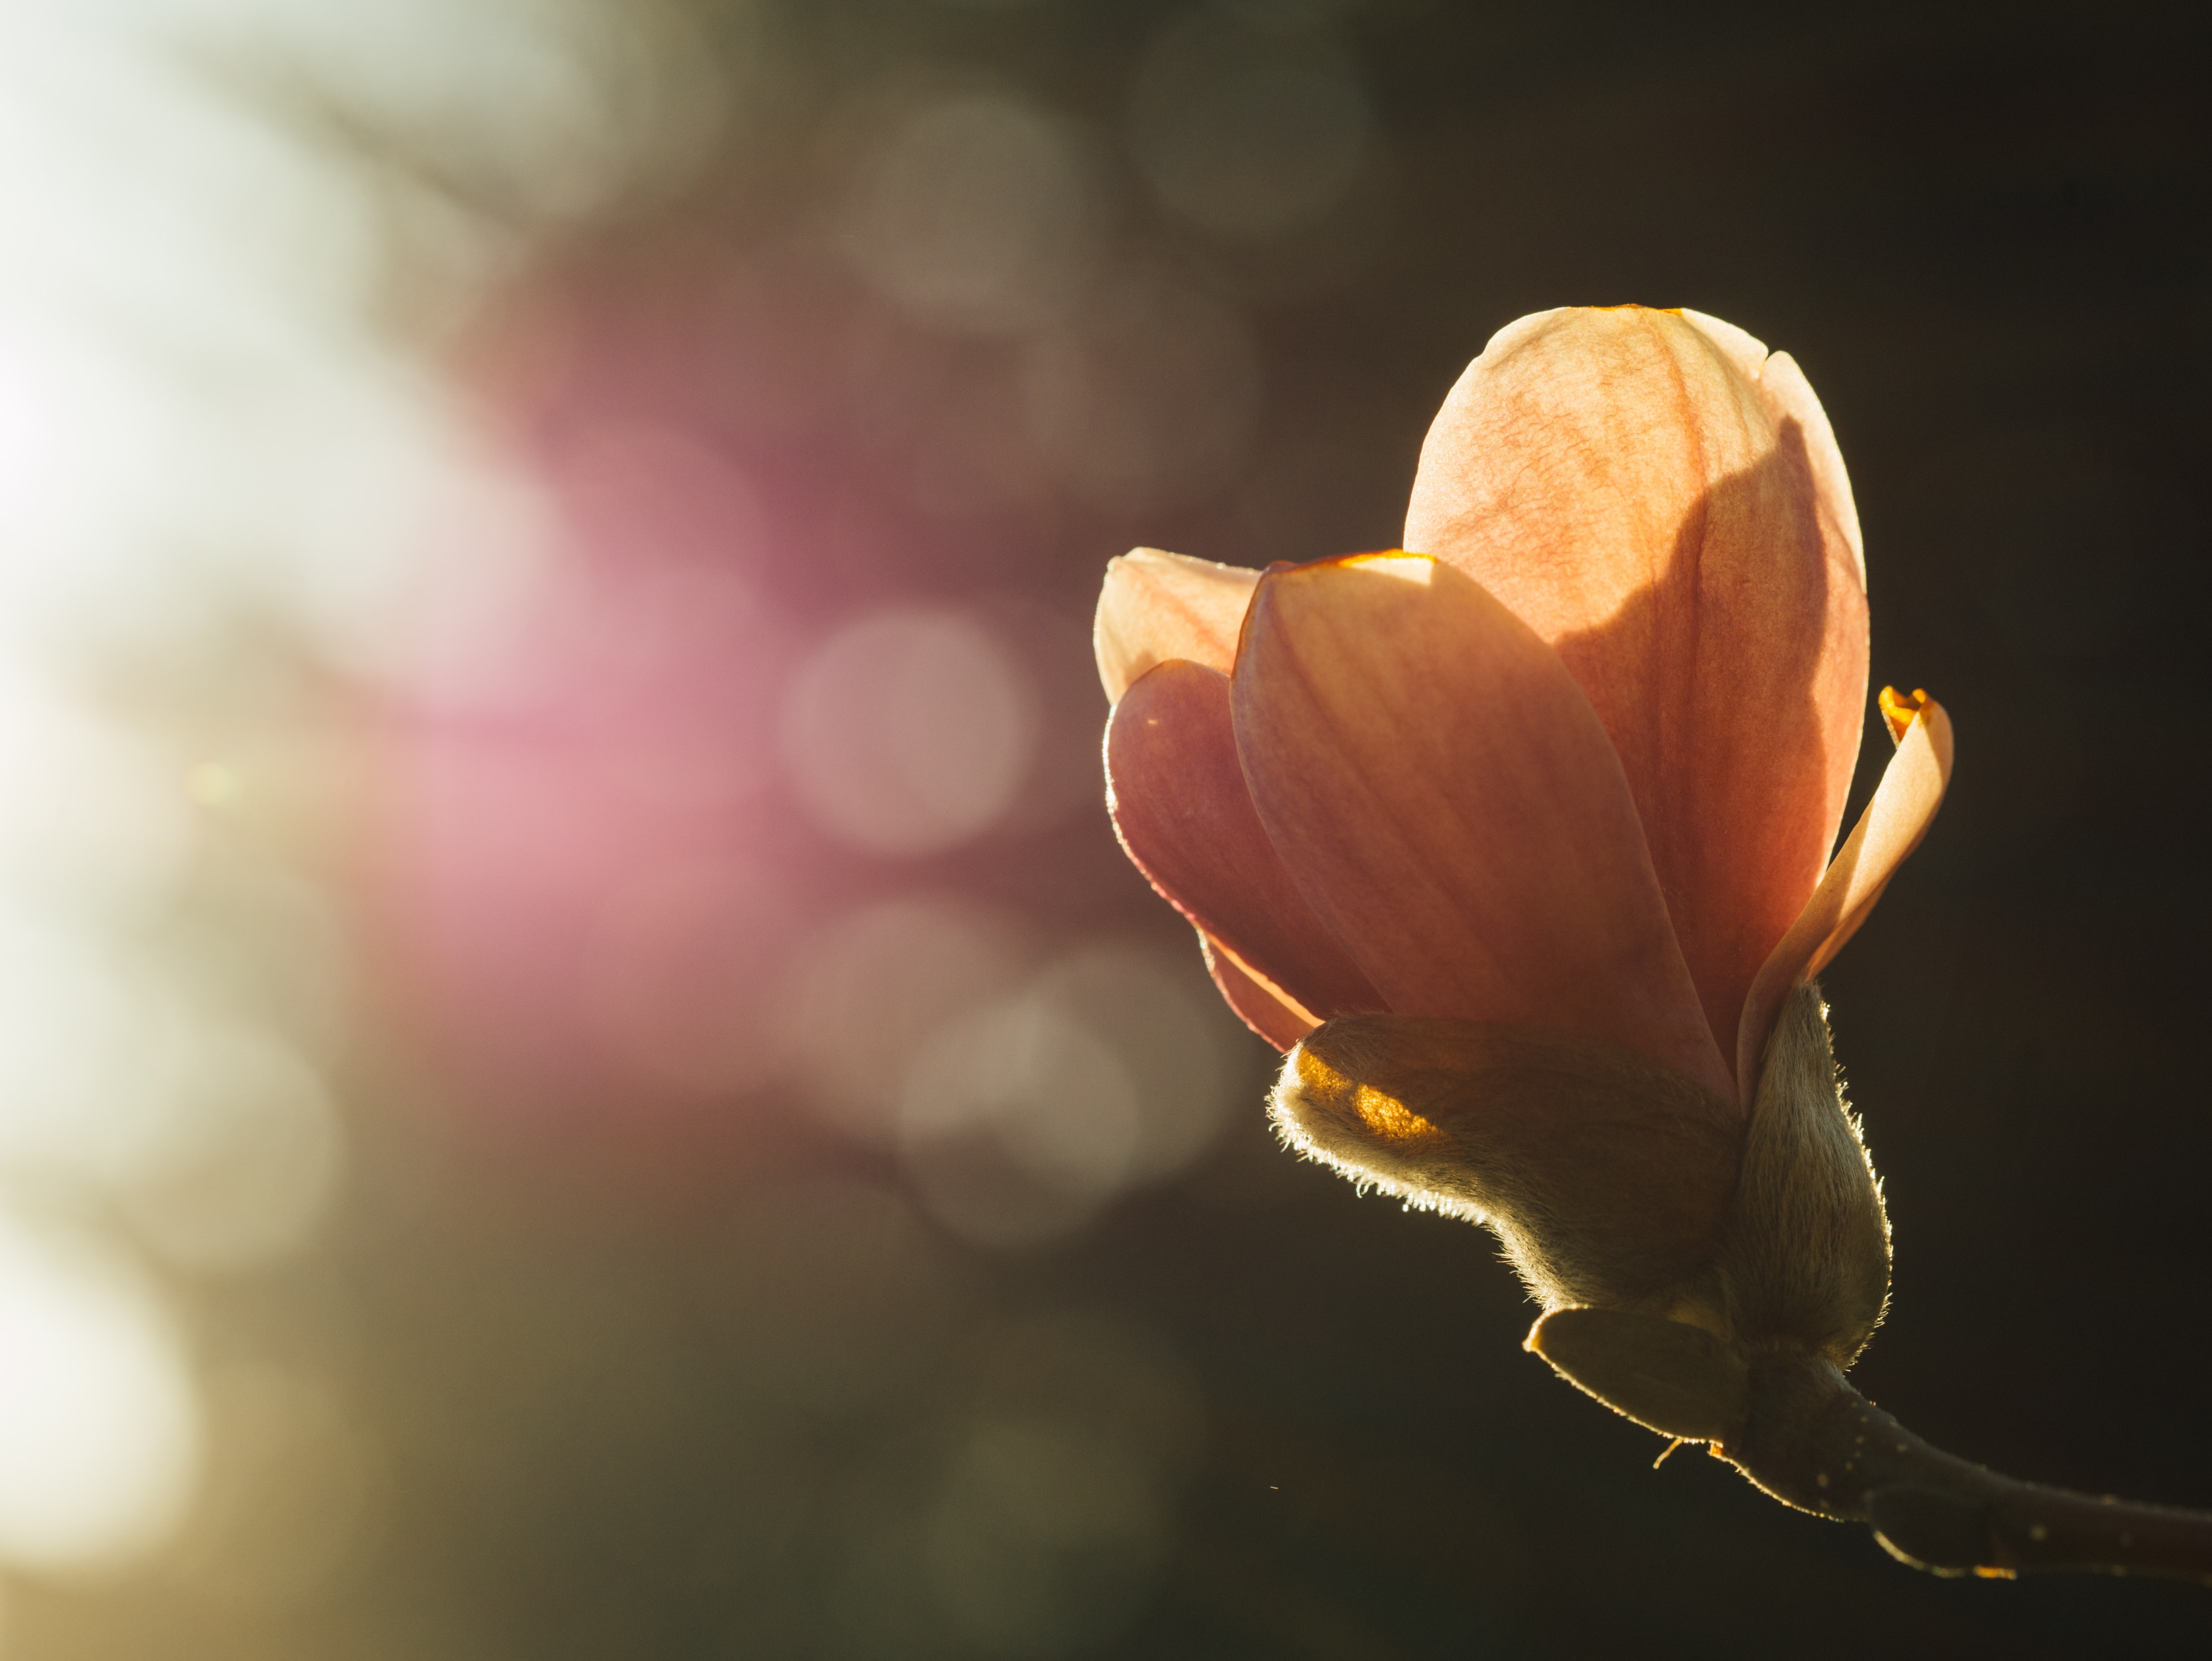 Close up of yellow flower bud and out of focus background in Spring sunlight